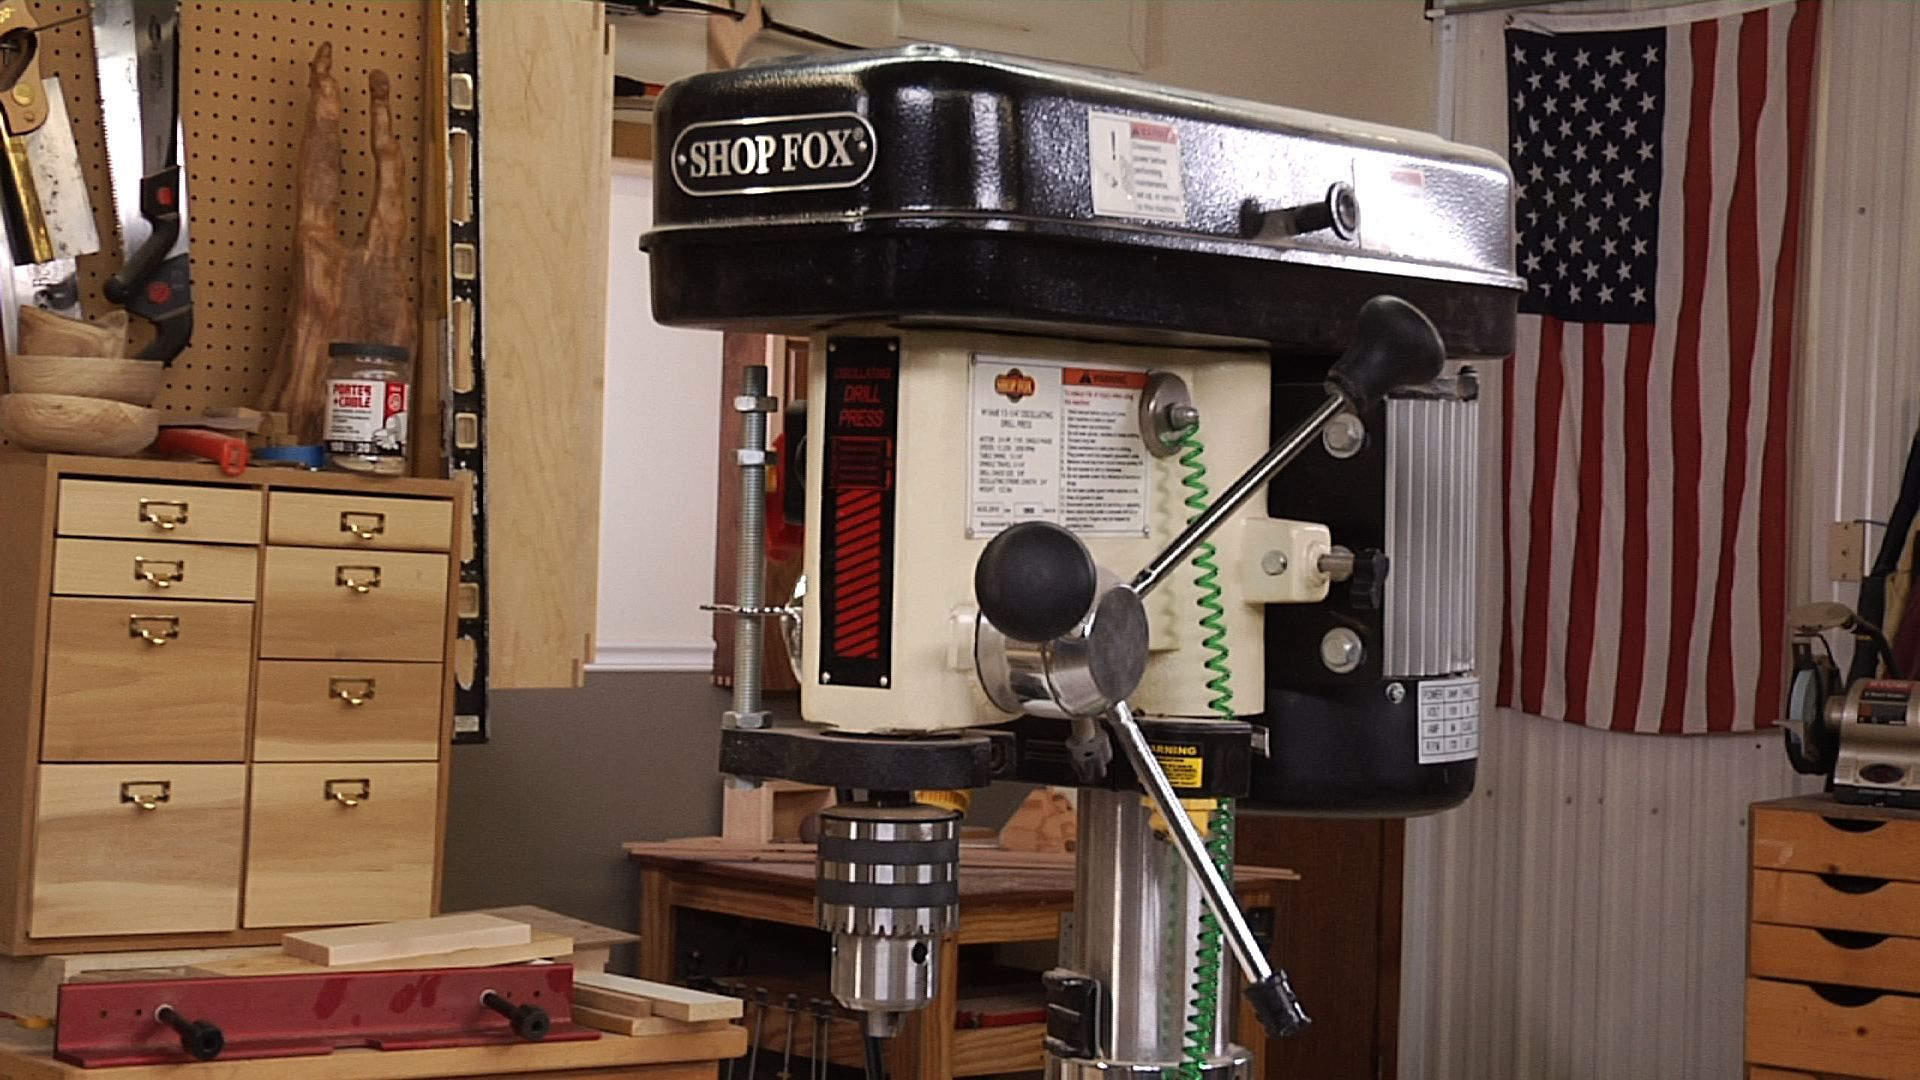 Sharpen Your Skills - Drill Press Safety